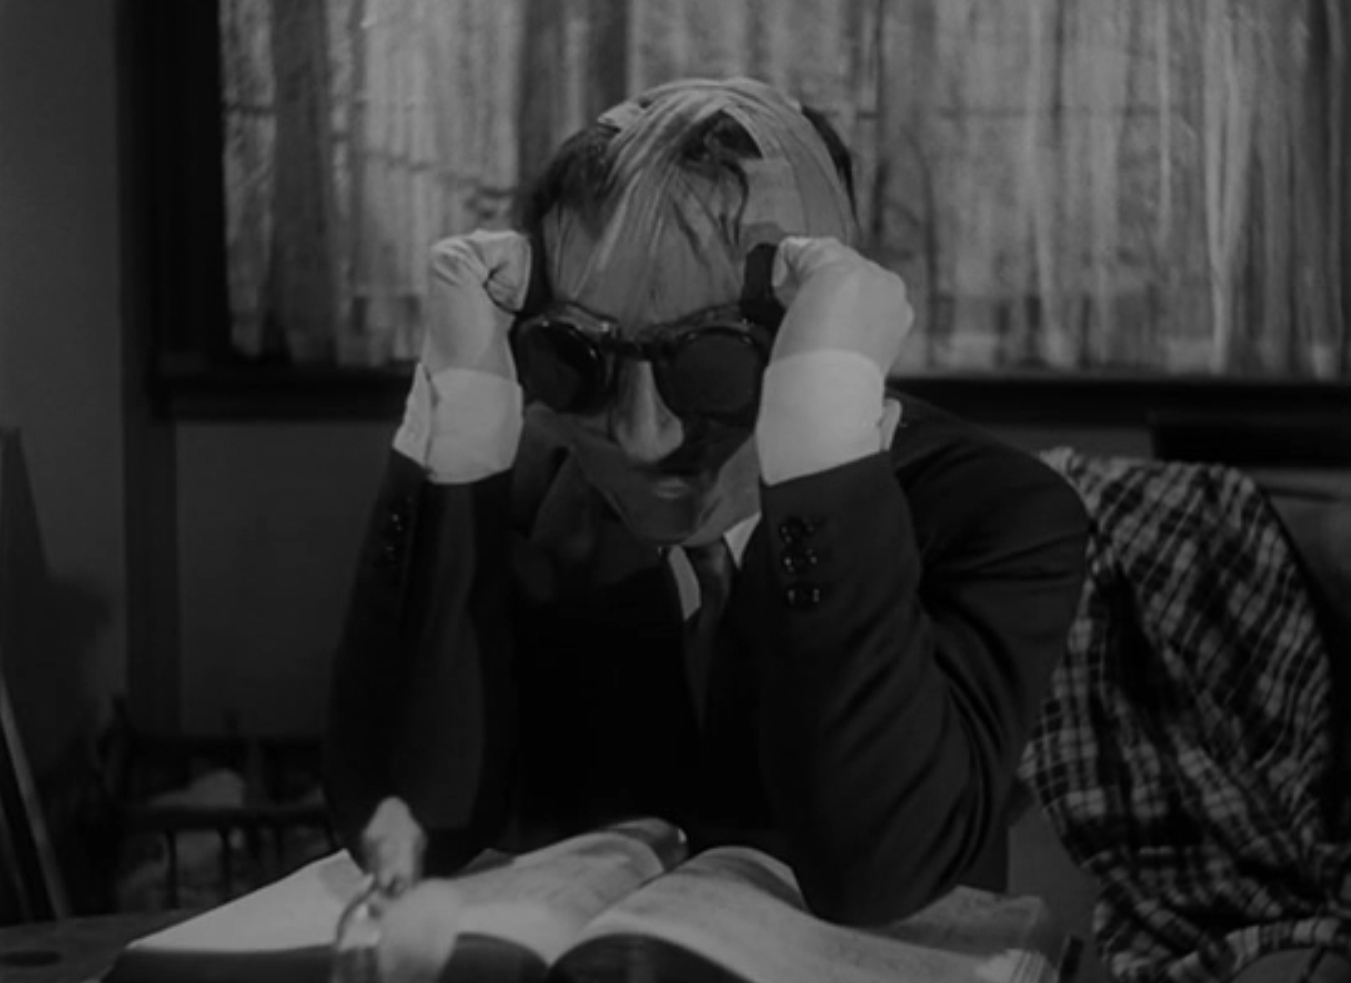 the invisible man review claude rains and gloria invisibleman9 acircmiddot invisibleman7 acircmiddot invisibleman16